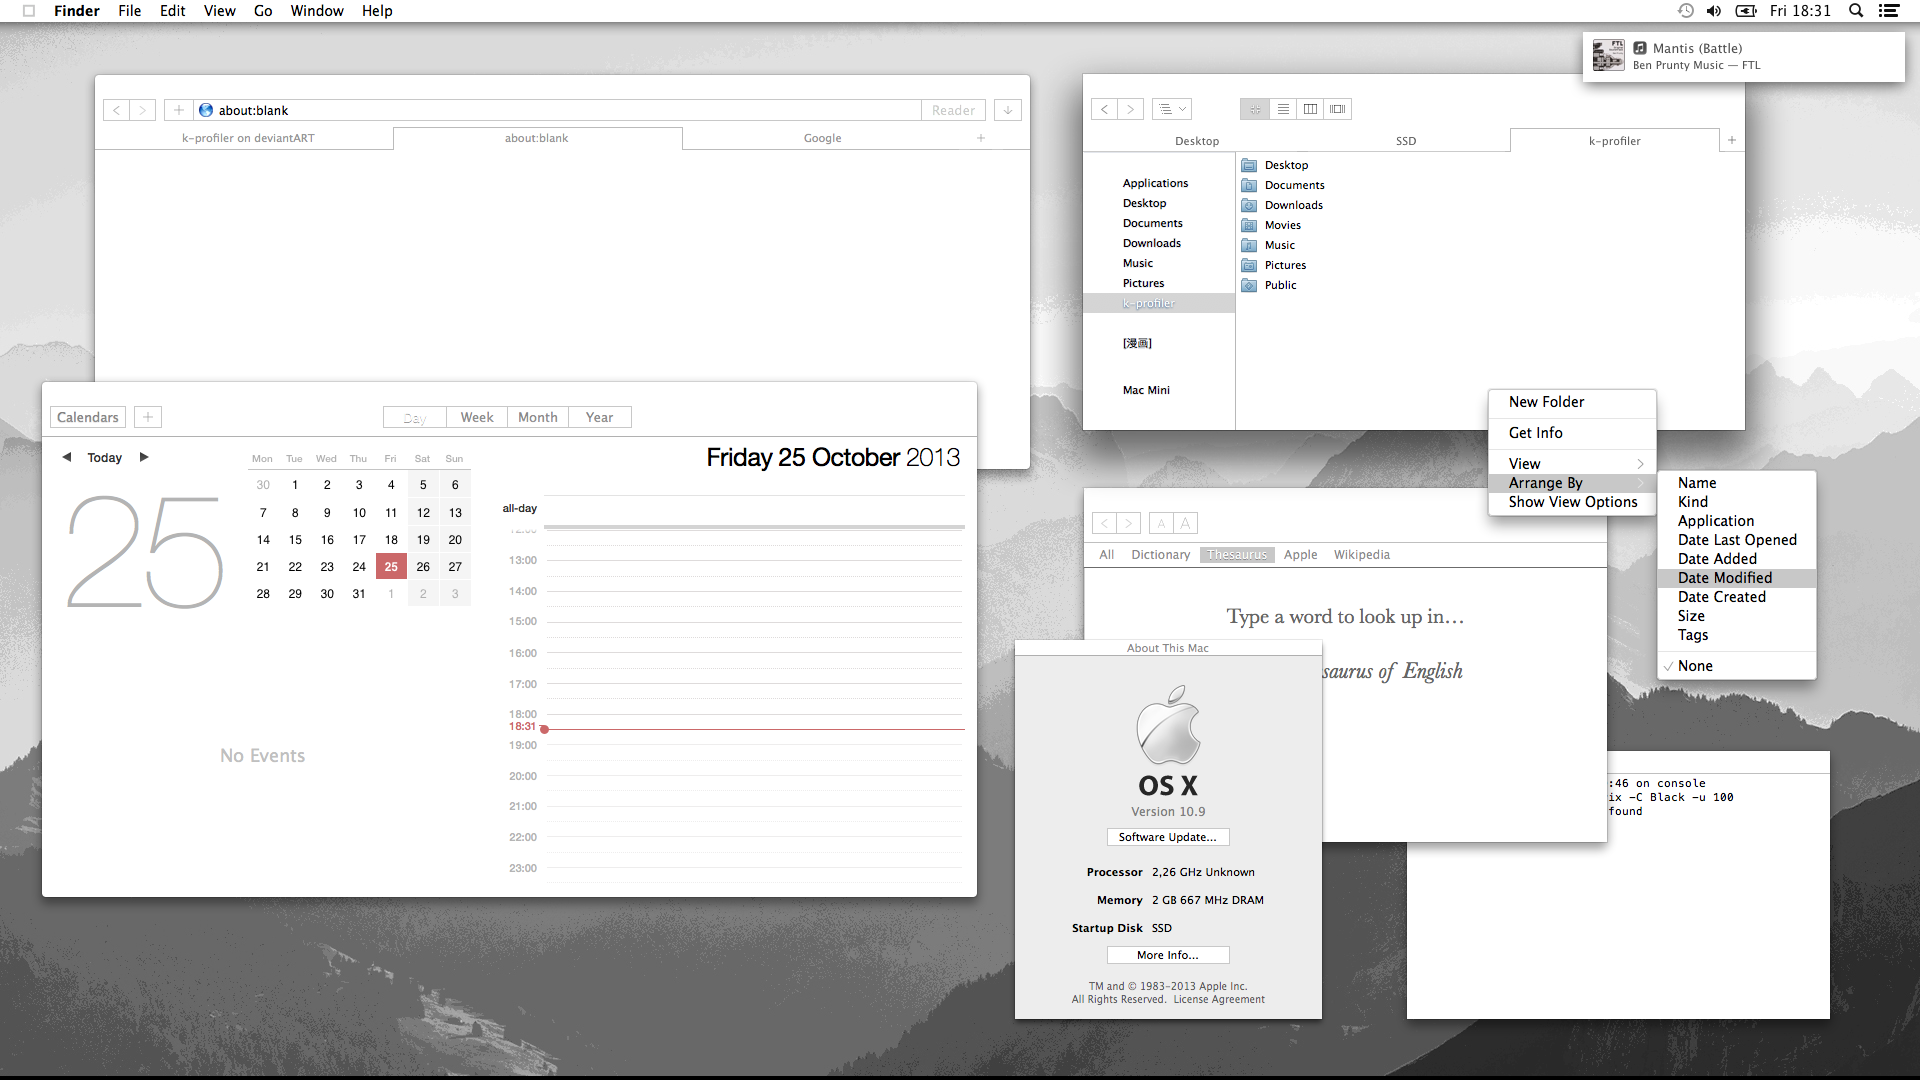 Minimal Theme for Mavericks (with Installer!) by k-profiler